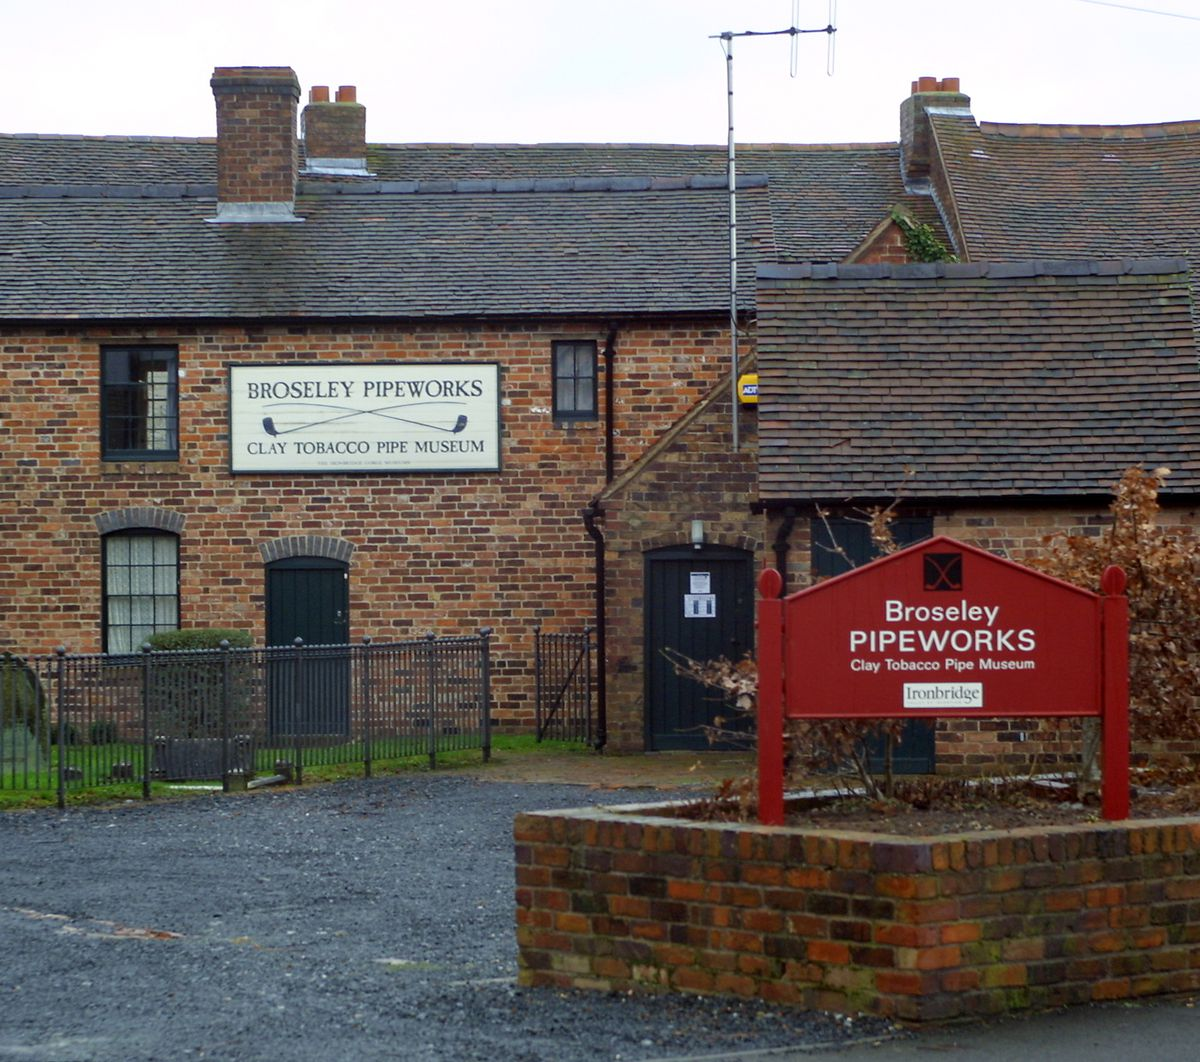 One of the earliest lottery projects in Shropshire was the restoration of the Broseley Pipeworks